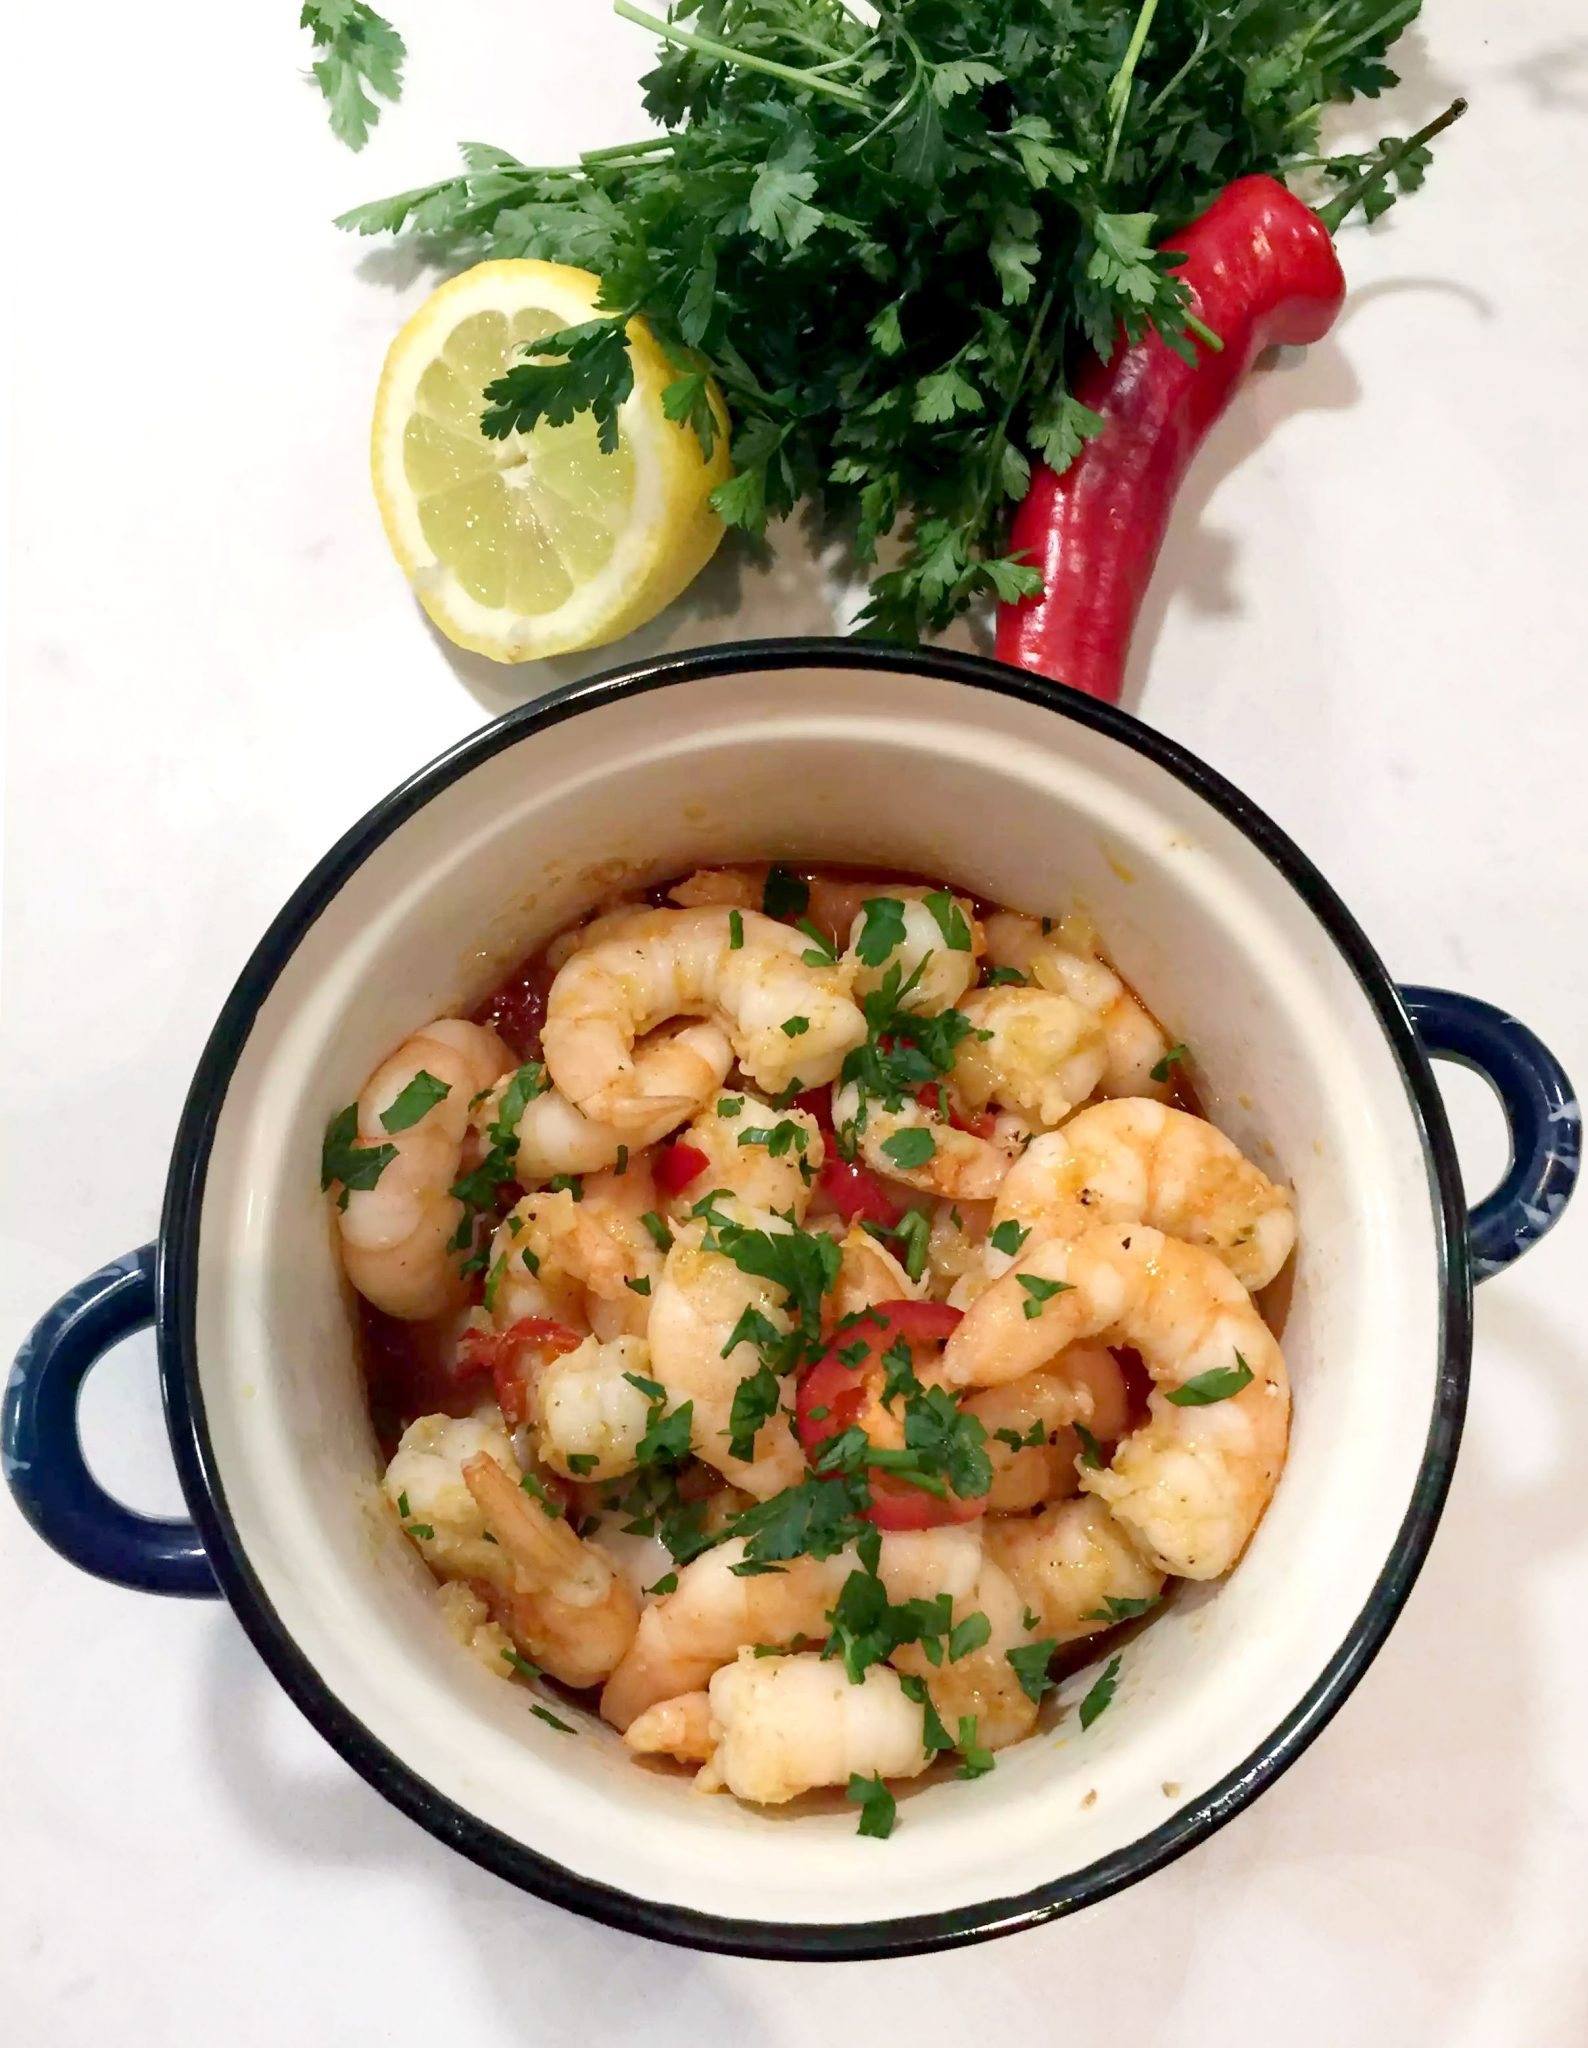 Gambas Al Ajillo A La Dan Garlic Chilli Prawns Shrimp Emma Eats Explores